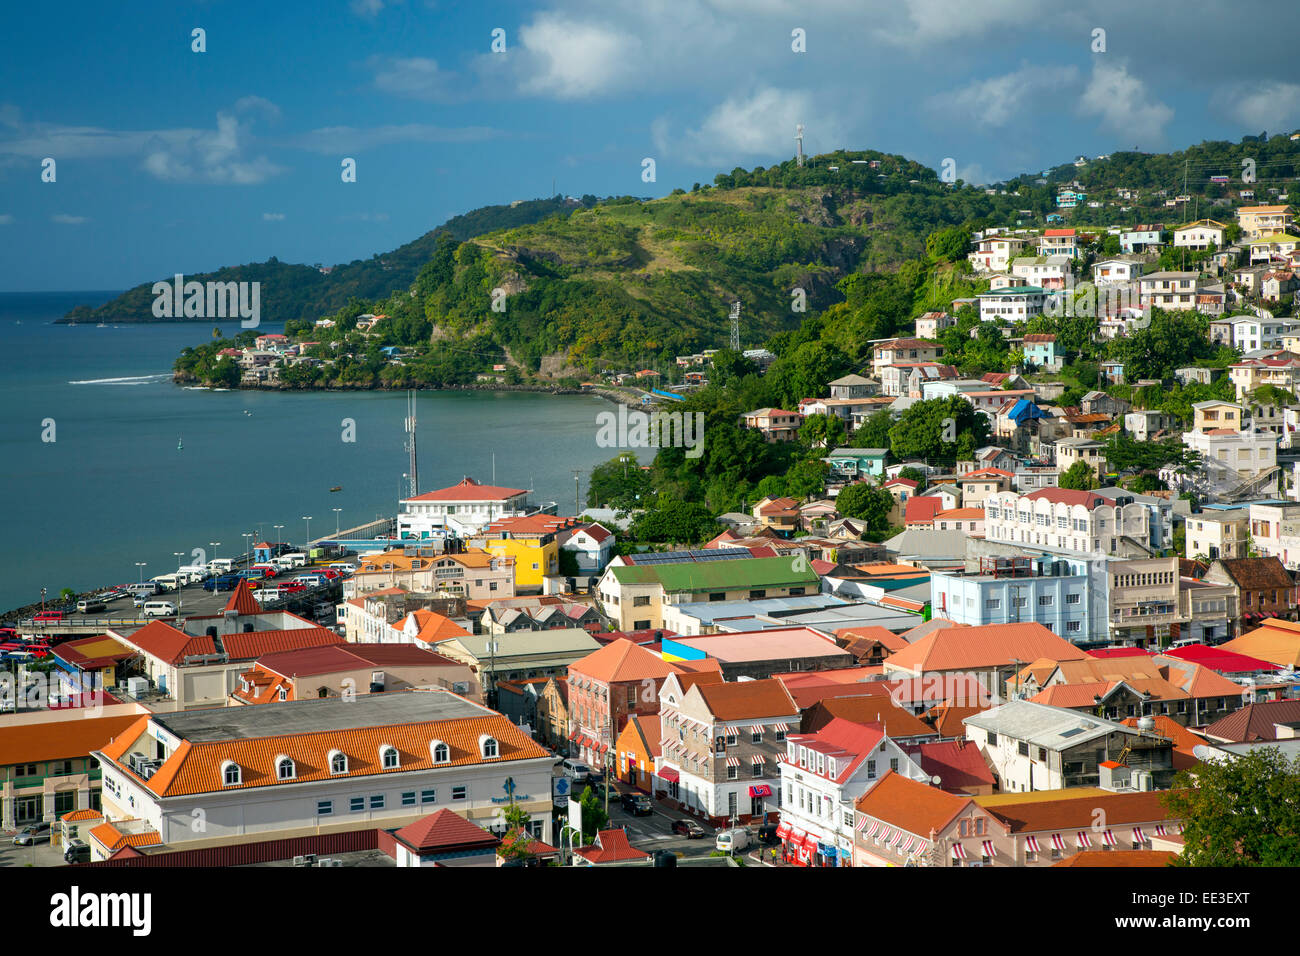 View over Saint Georges, Grenada, West Indies - Stock Image